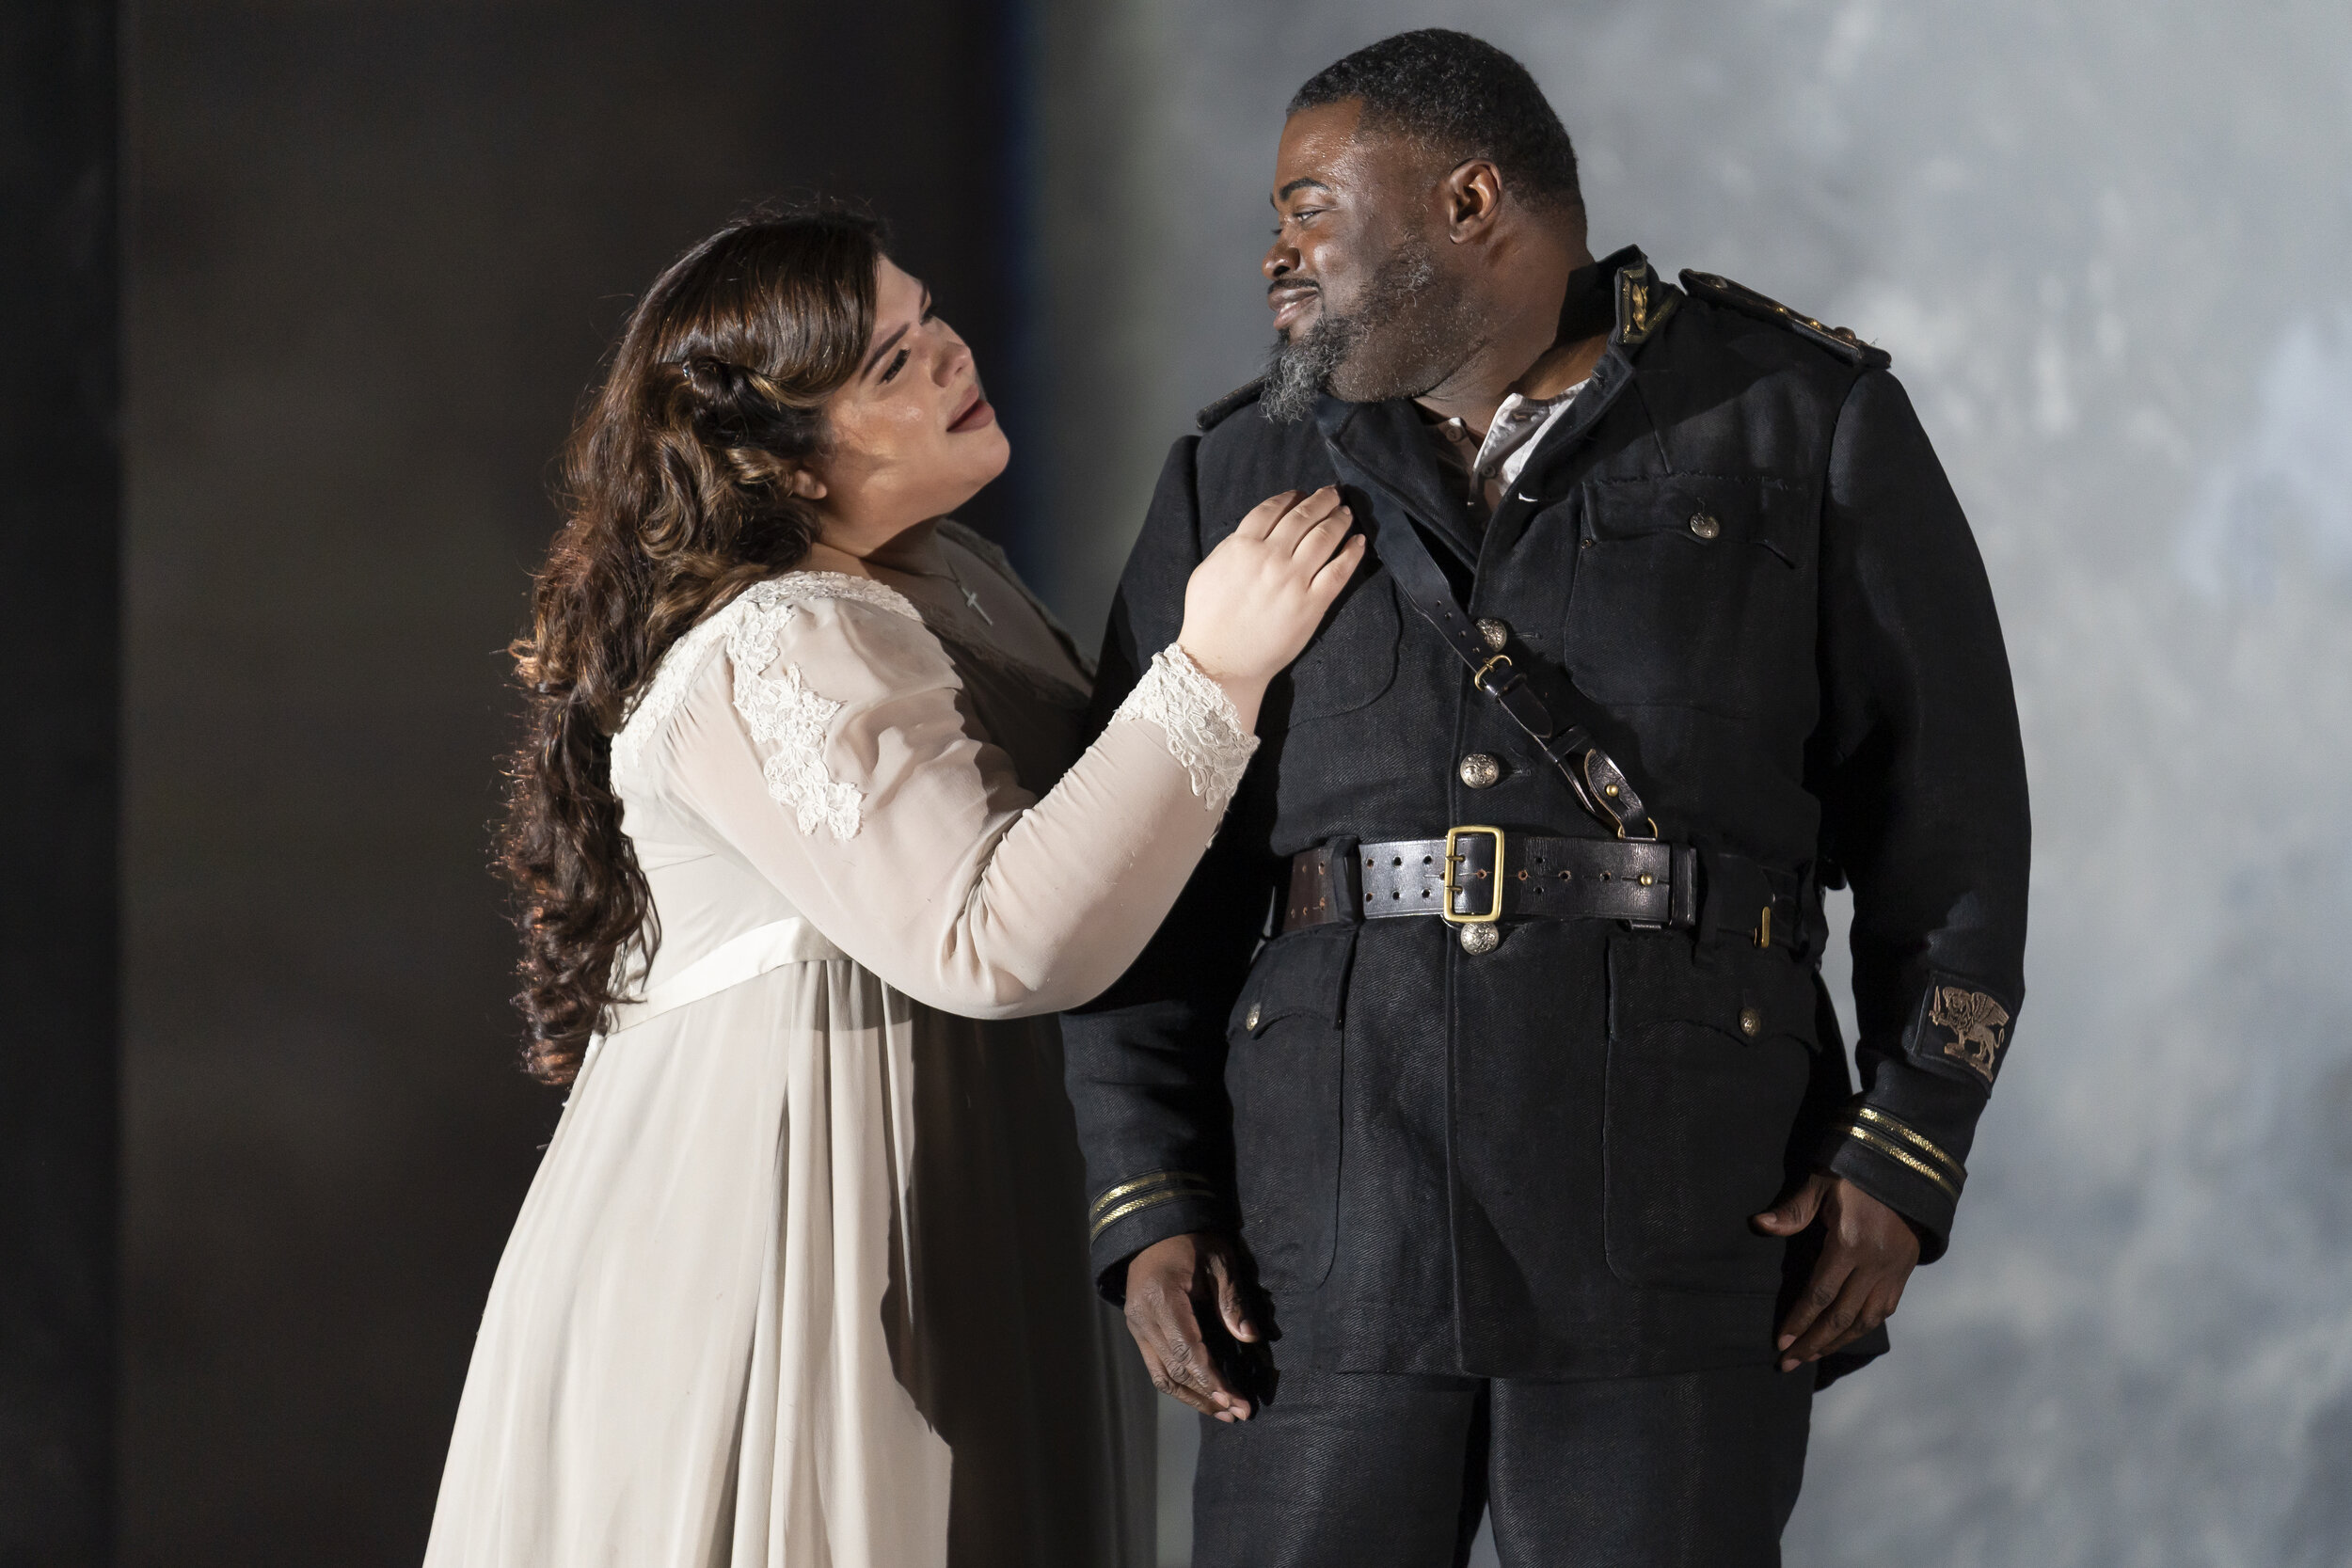 Desdemona (Leah Crocetto) and Otello (Russell Thomas) are rapturously reunited. Photo by Scott Suchman; courtesy of Washington National Opera.